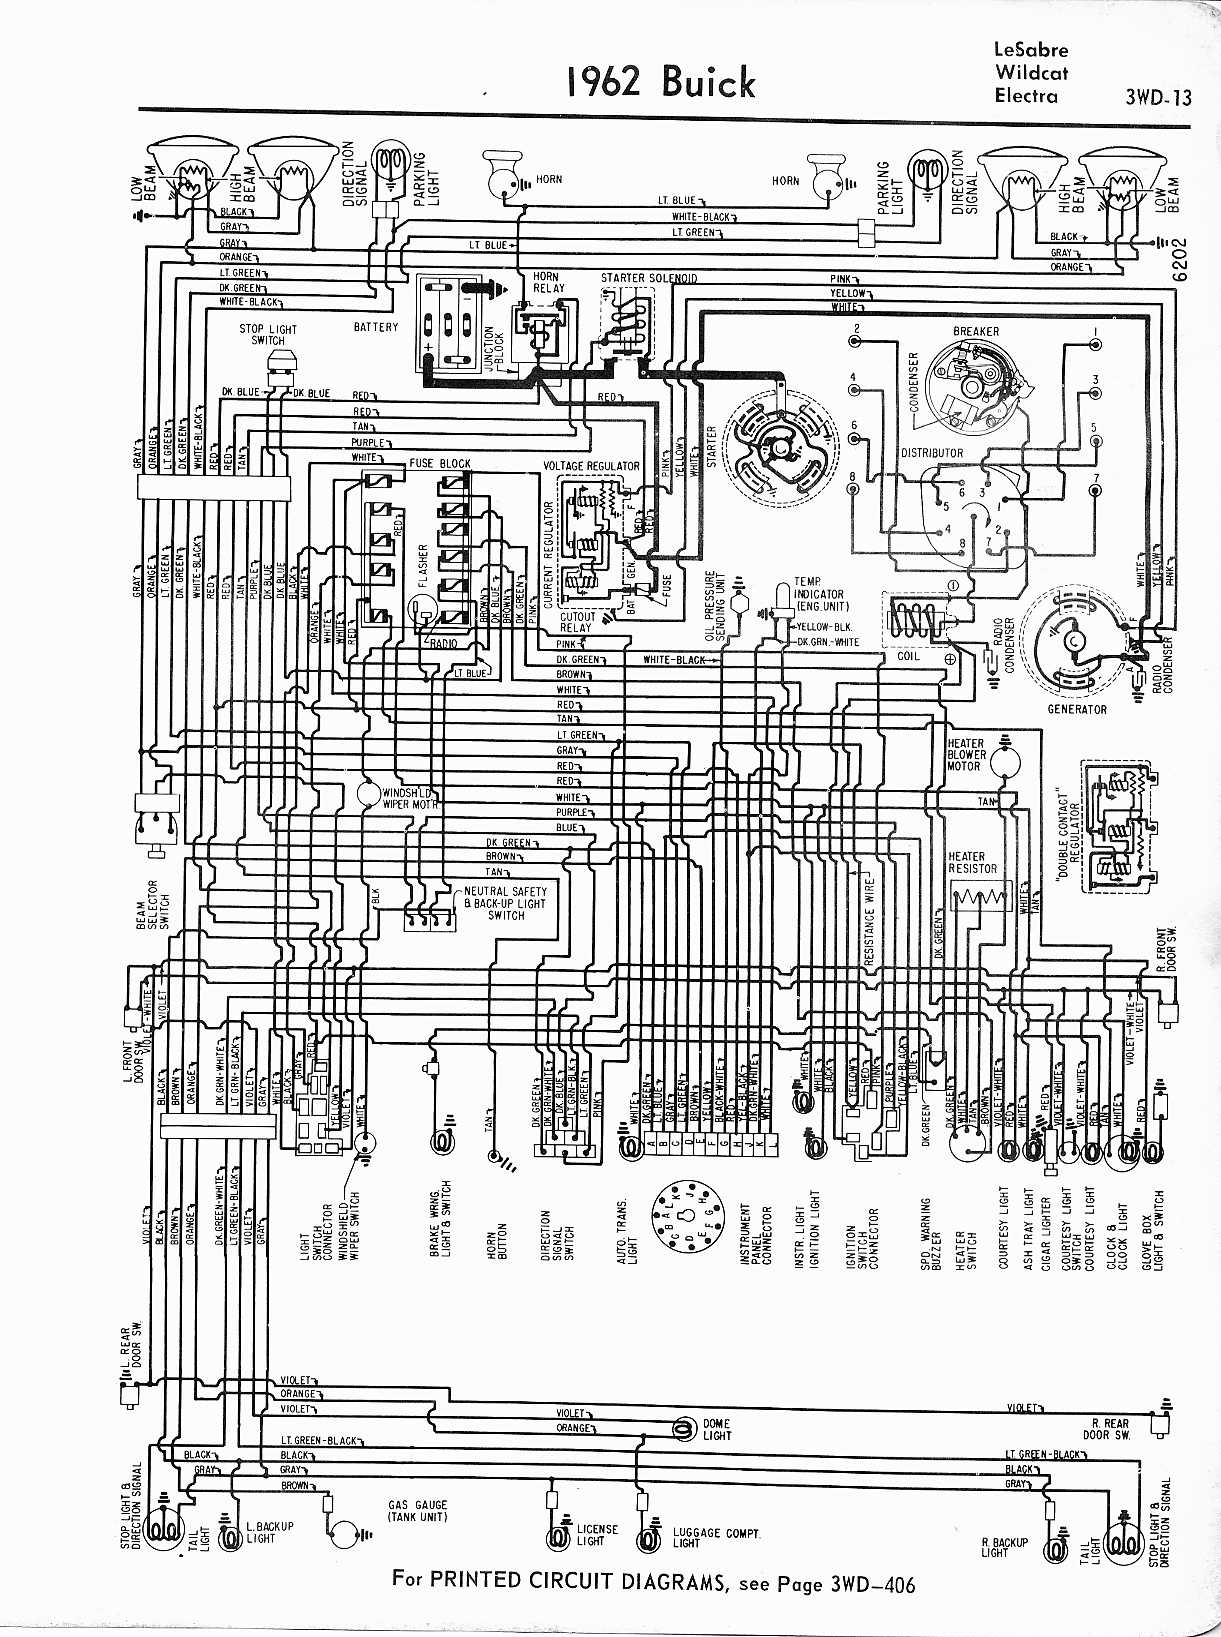 65 ford headlight switch wiring diagram free picture buick    wiring    diagrams 1957 1965  buick    wiring    diagrams 1957 1965